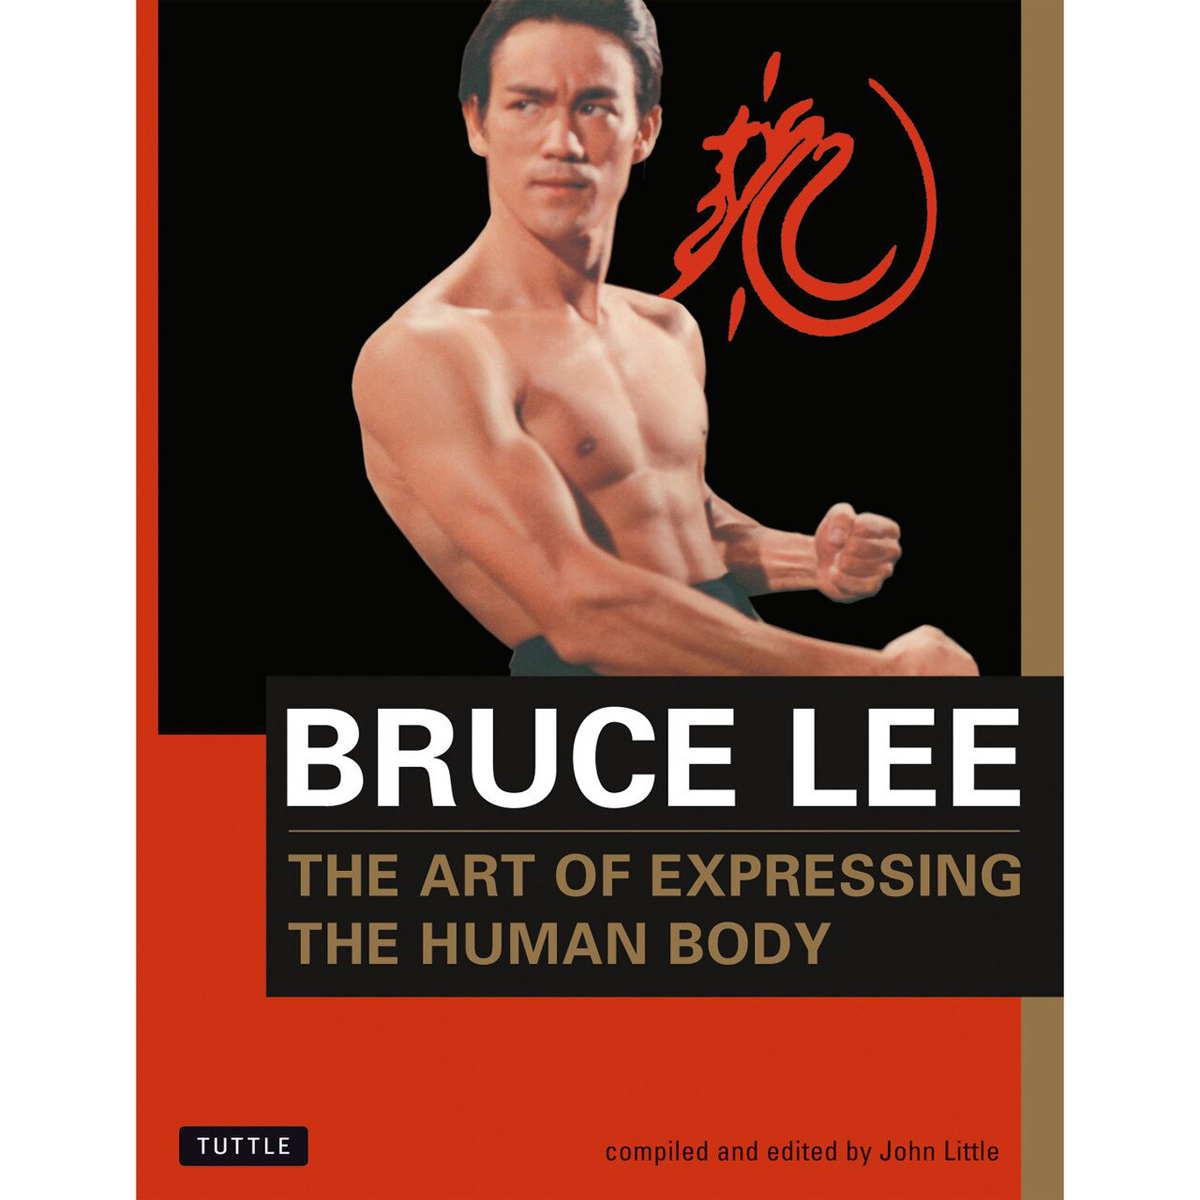 Bruce Lee The Art of Expressing The Human Body Book